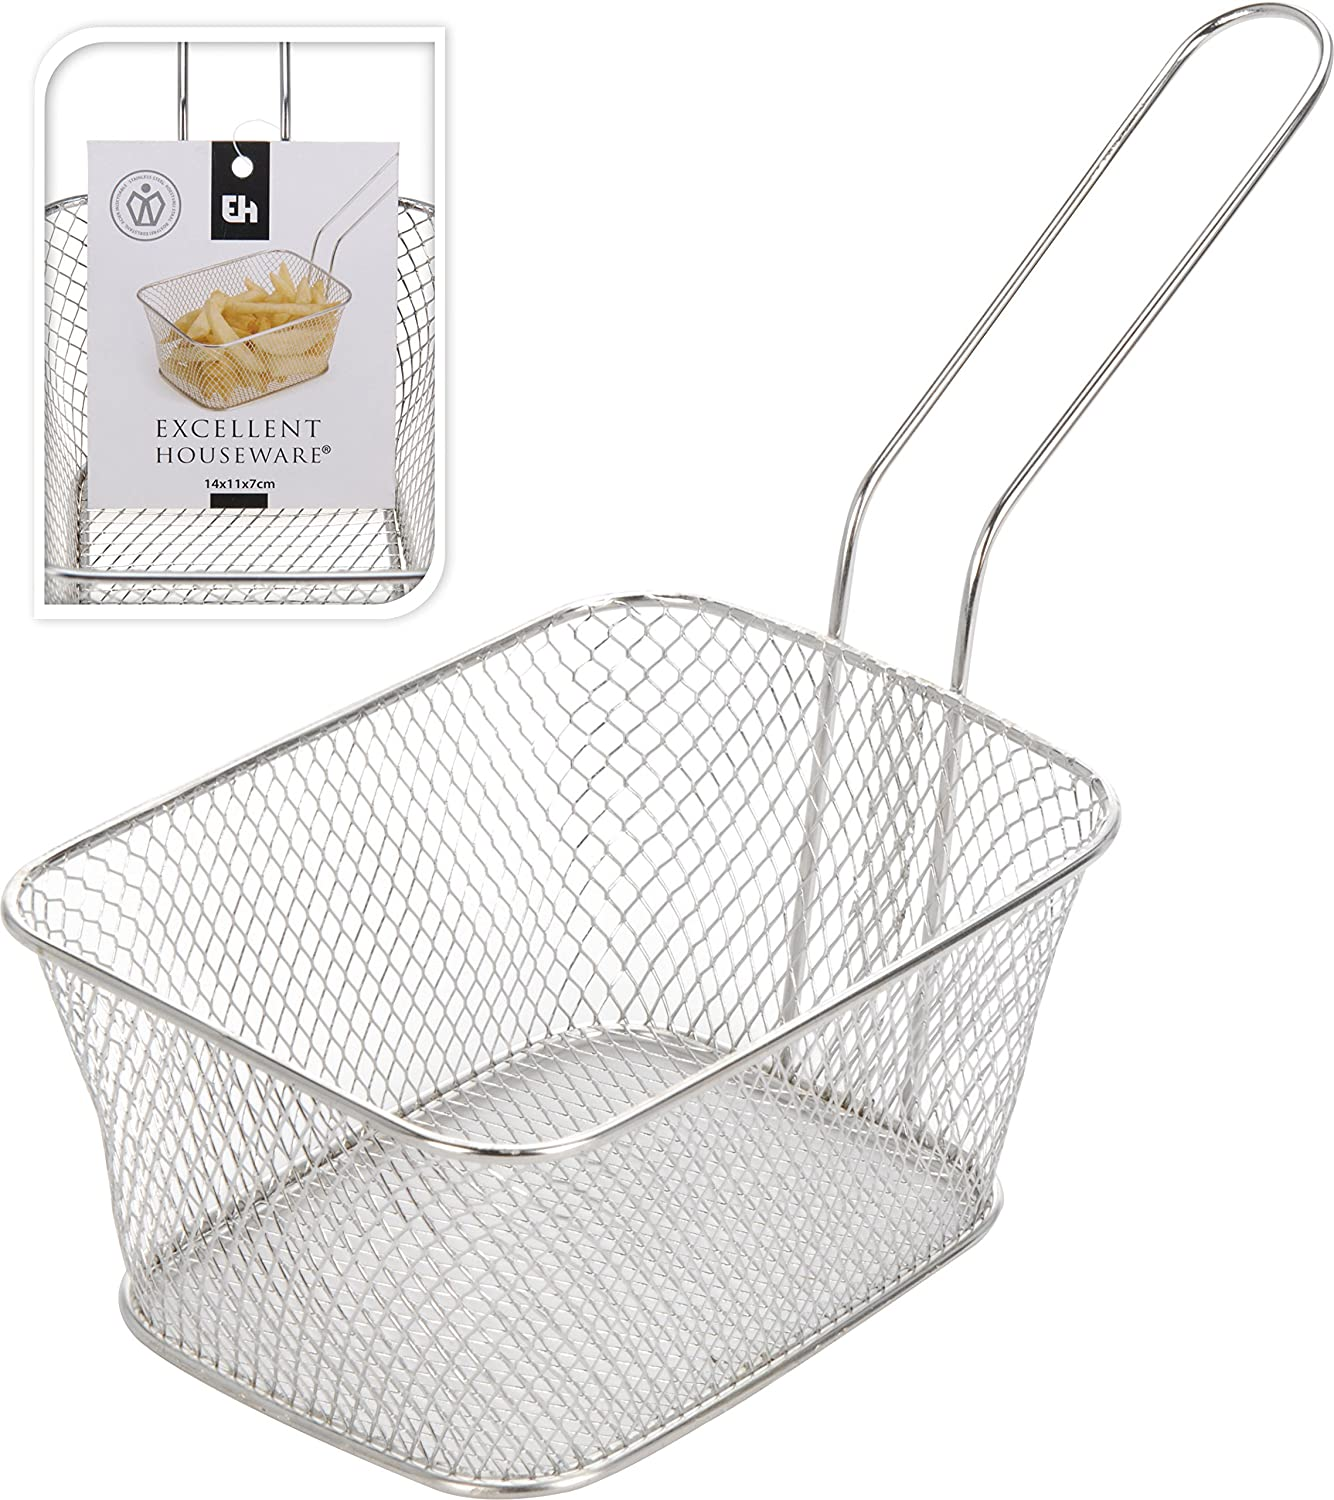 Mini Chip Serving Basket Stainless Steel Mini Chrome Fryer Chip Food Basket New 4 Pack (4) Koopman